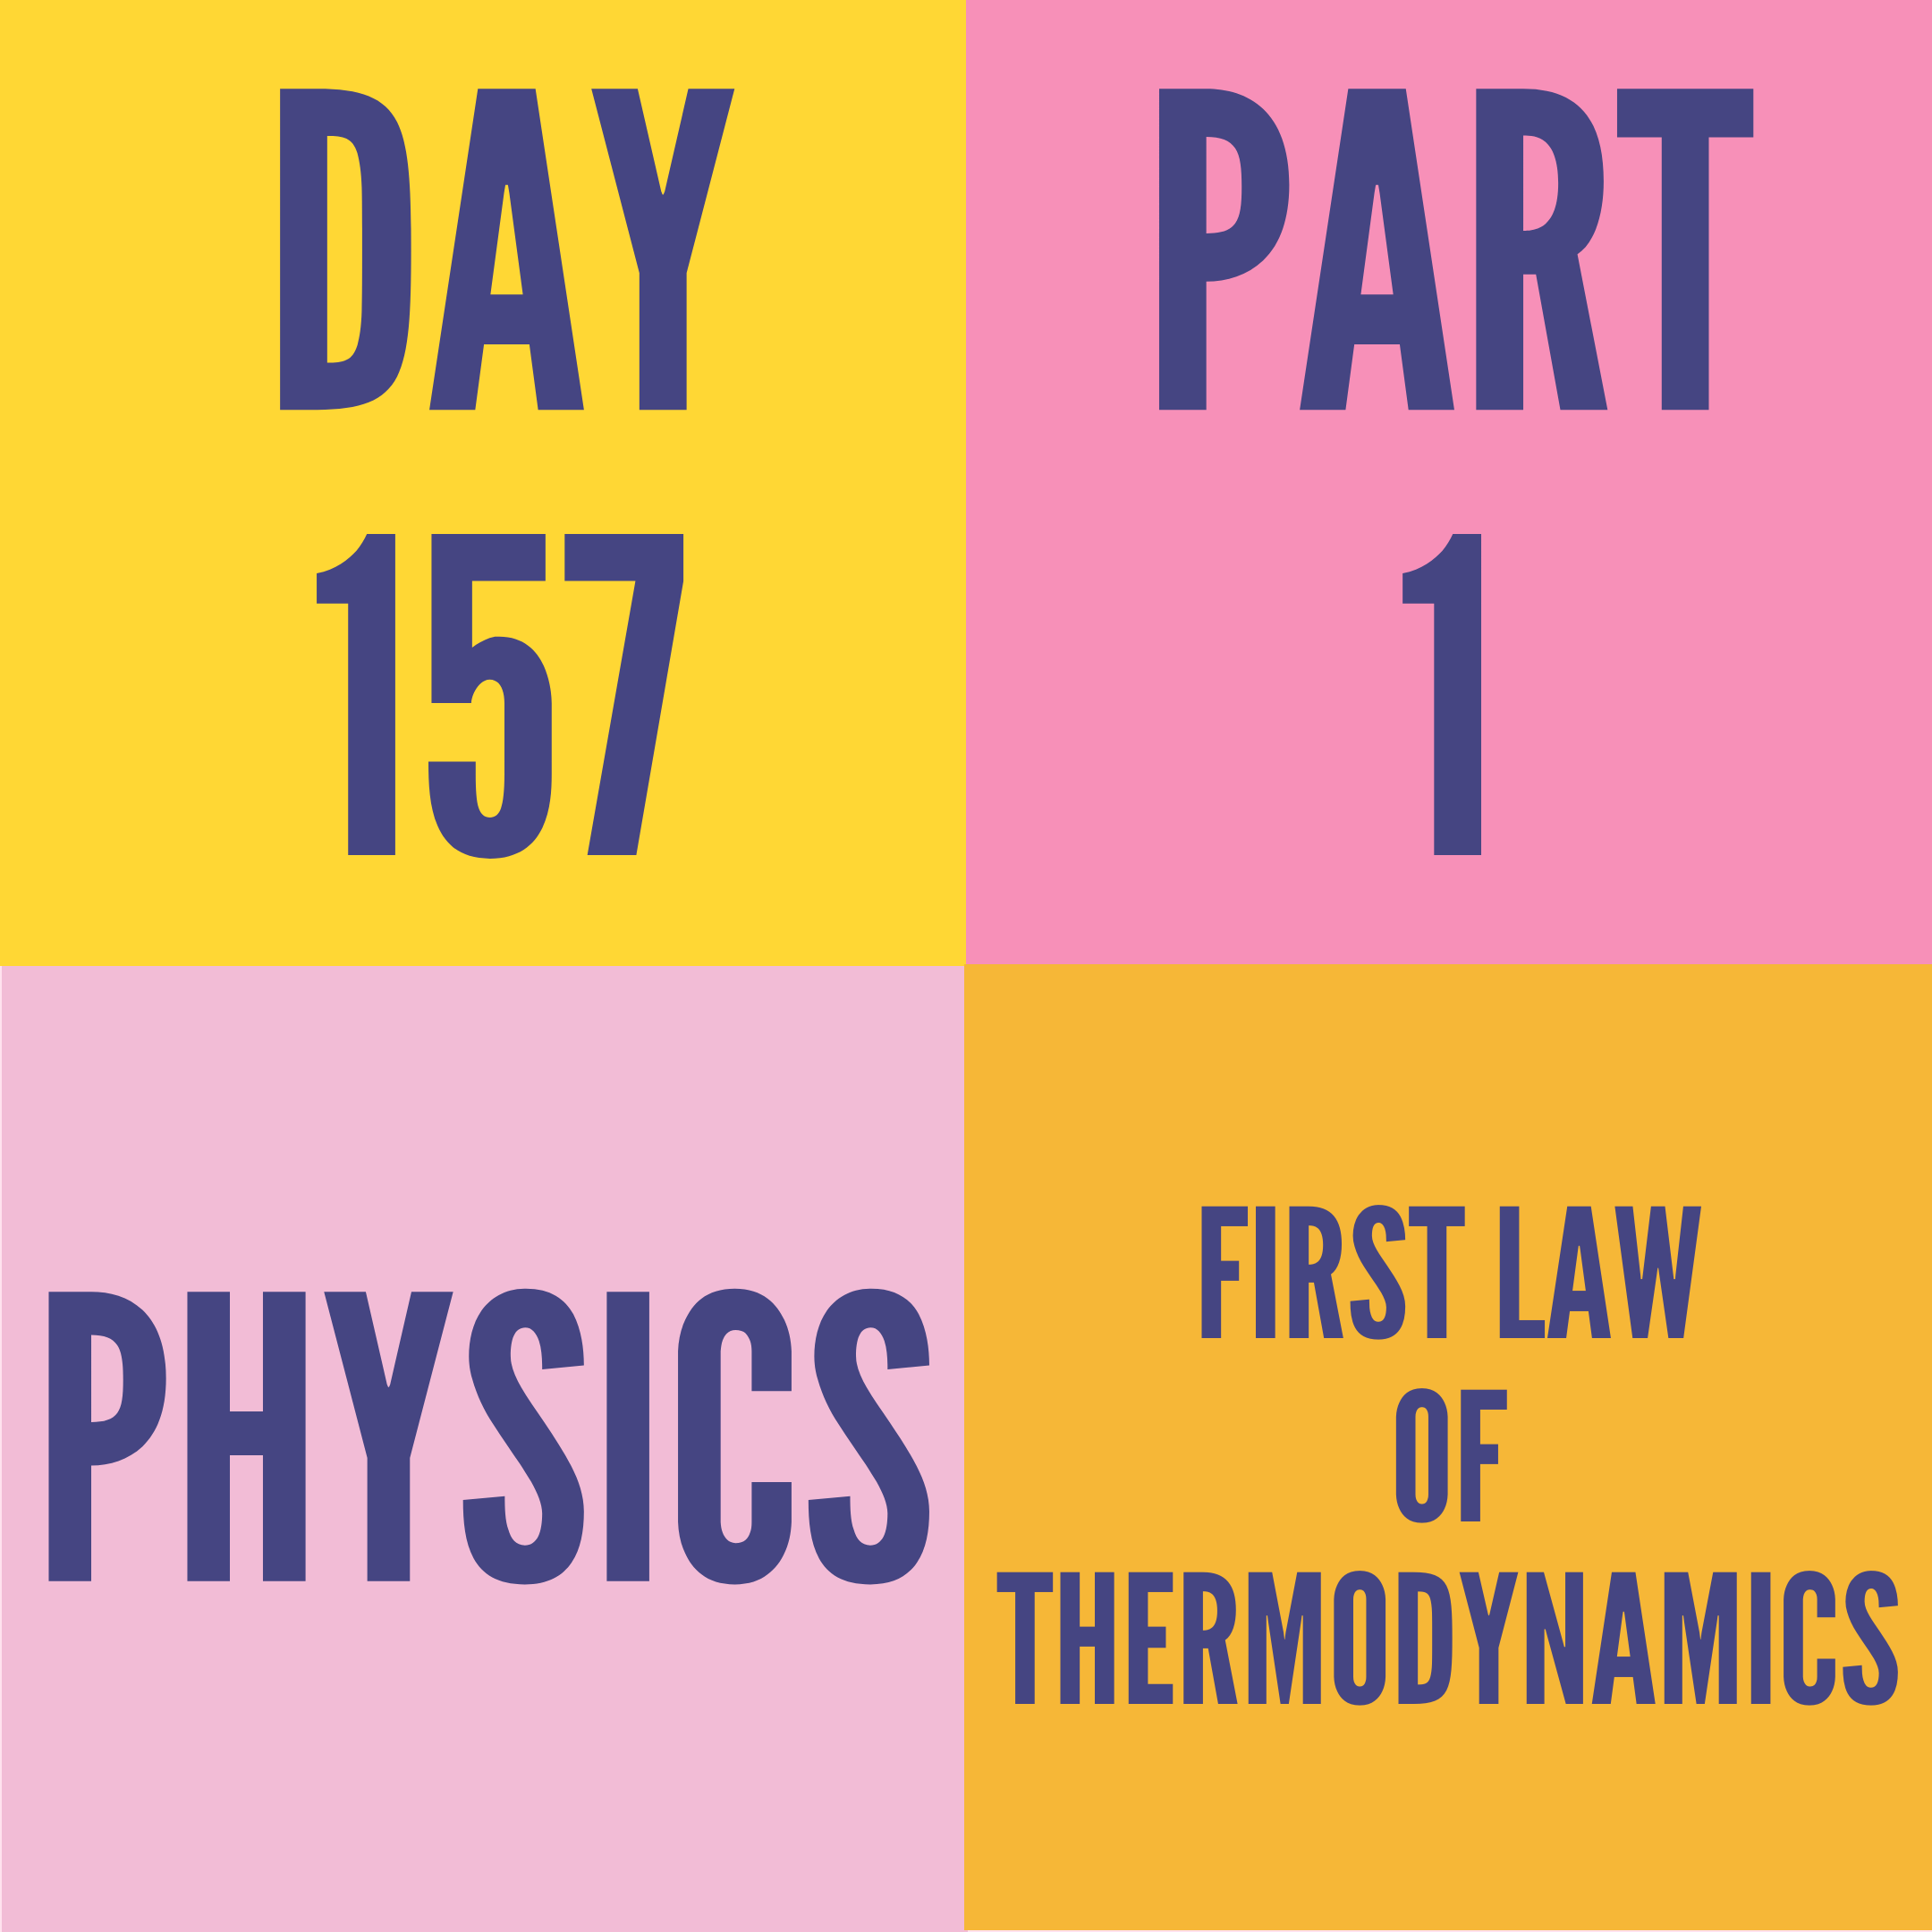 DAY-157 PART-1 FIRST LAW OF THERMODYNAMICS